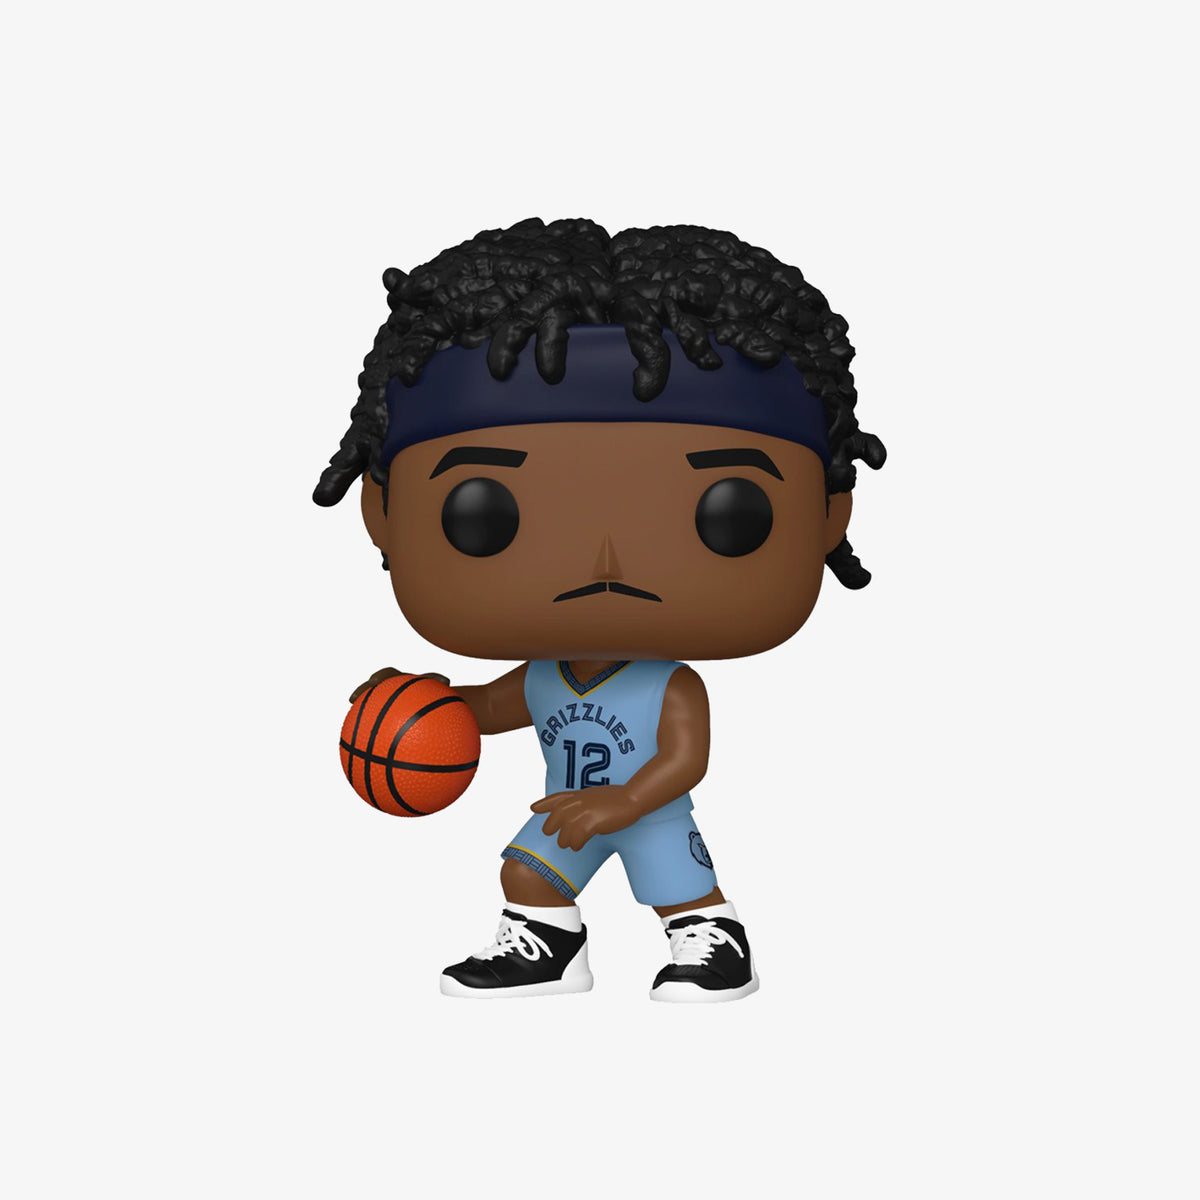 Ja Morant Memphis Grizzlies NBA Pop Figure - Statement - Blue